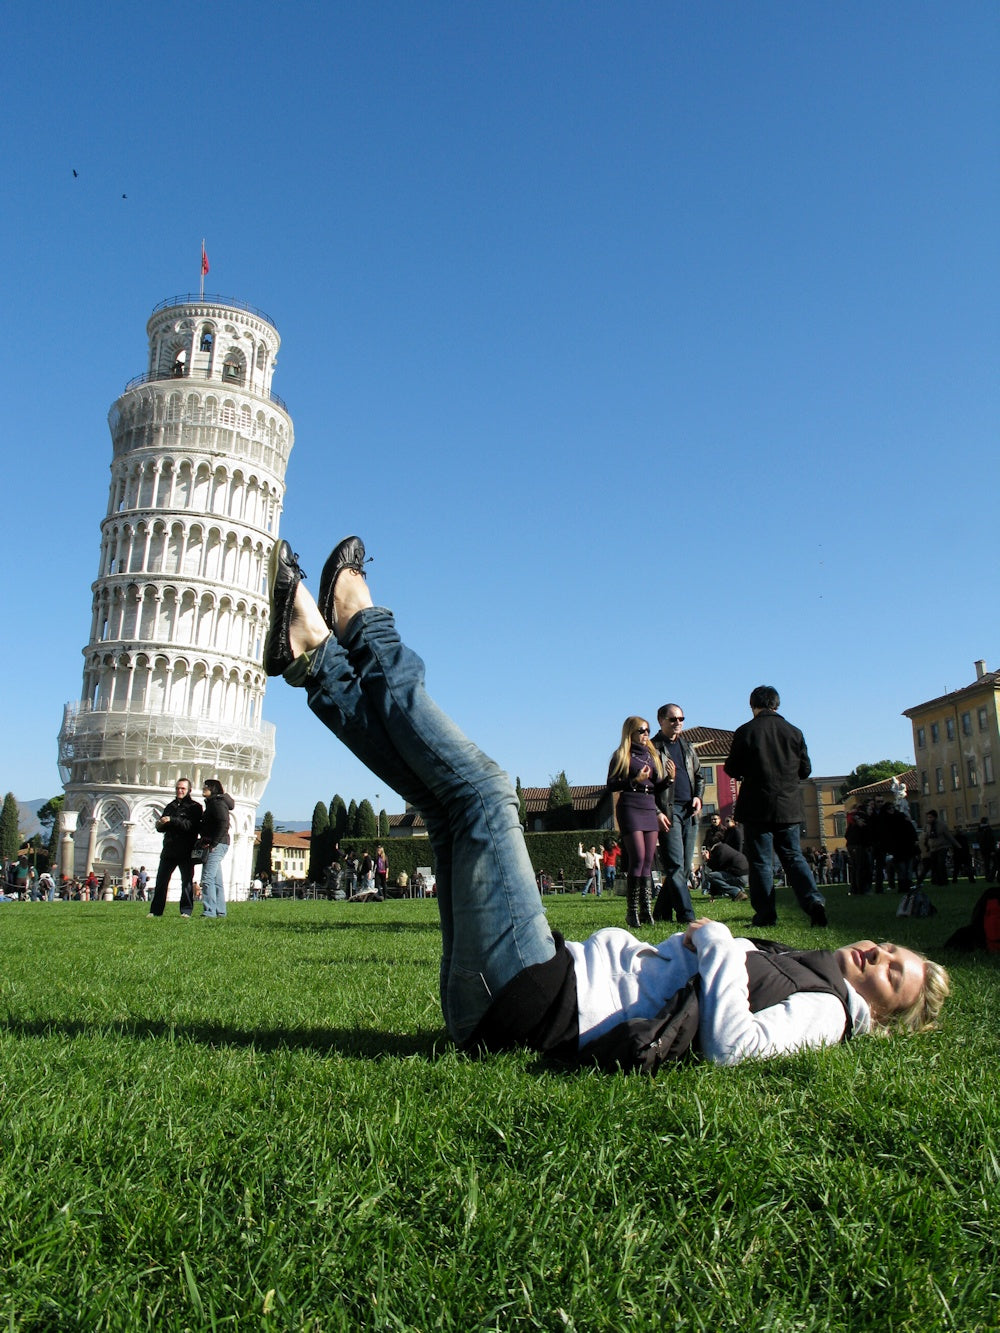 Forced perspective photo of a person holding up the Leaning Tower of Pisa with their legs